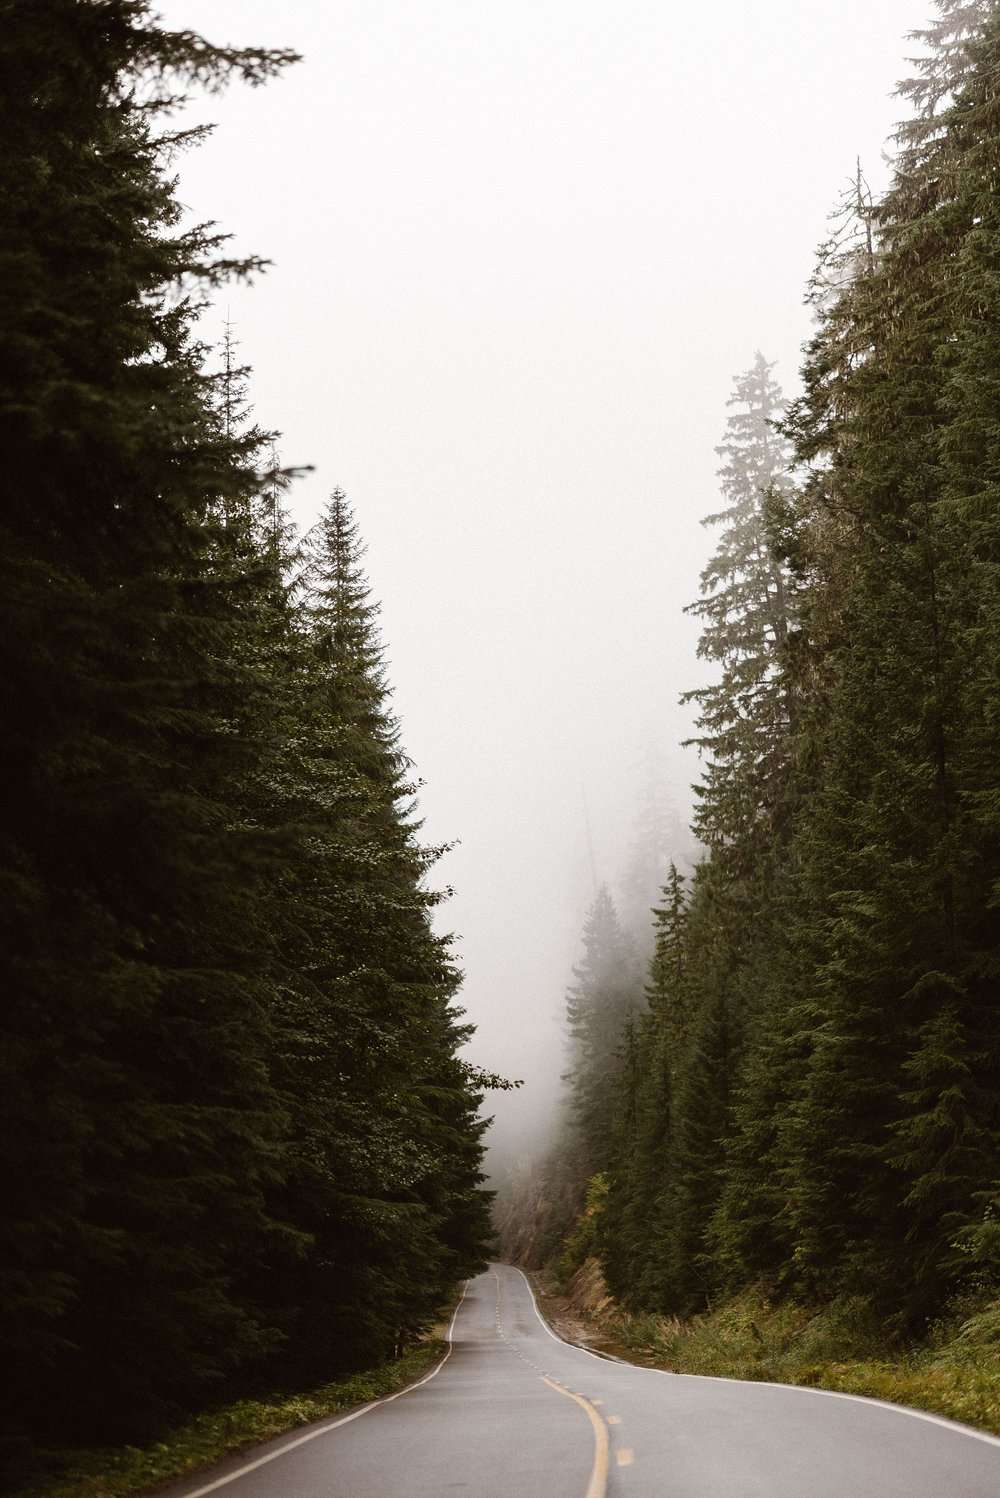 A long road leads into a green, lush forest in Washington state as fog settles in the distance. This photo was captured by Adventure Instead, a Washington elopement photographer.